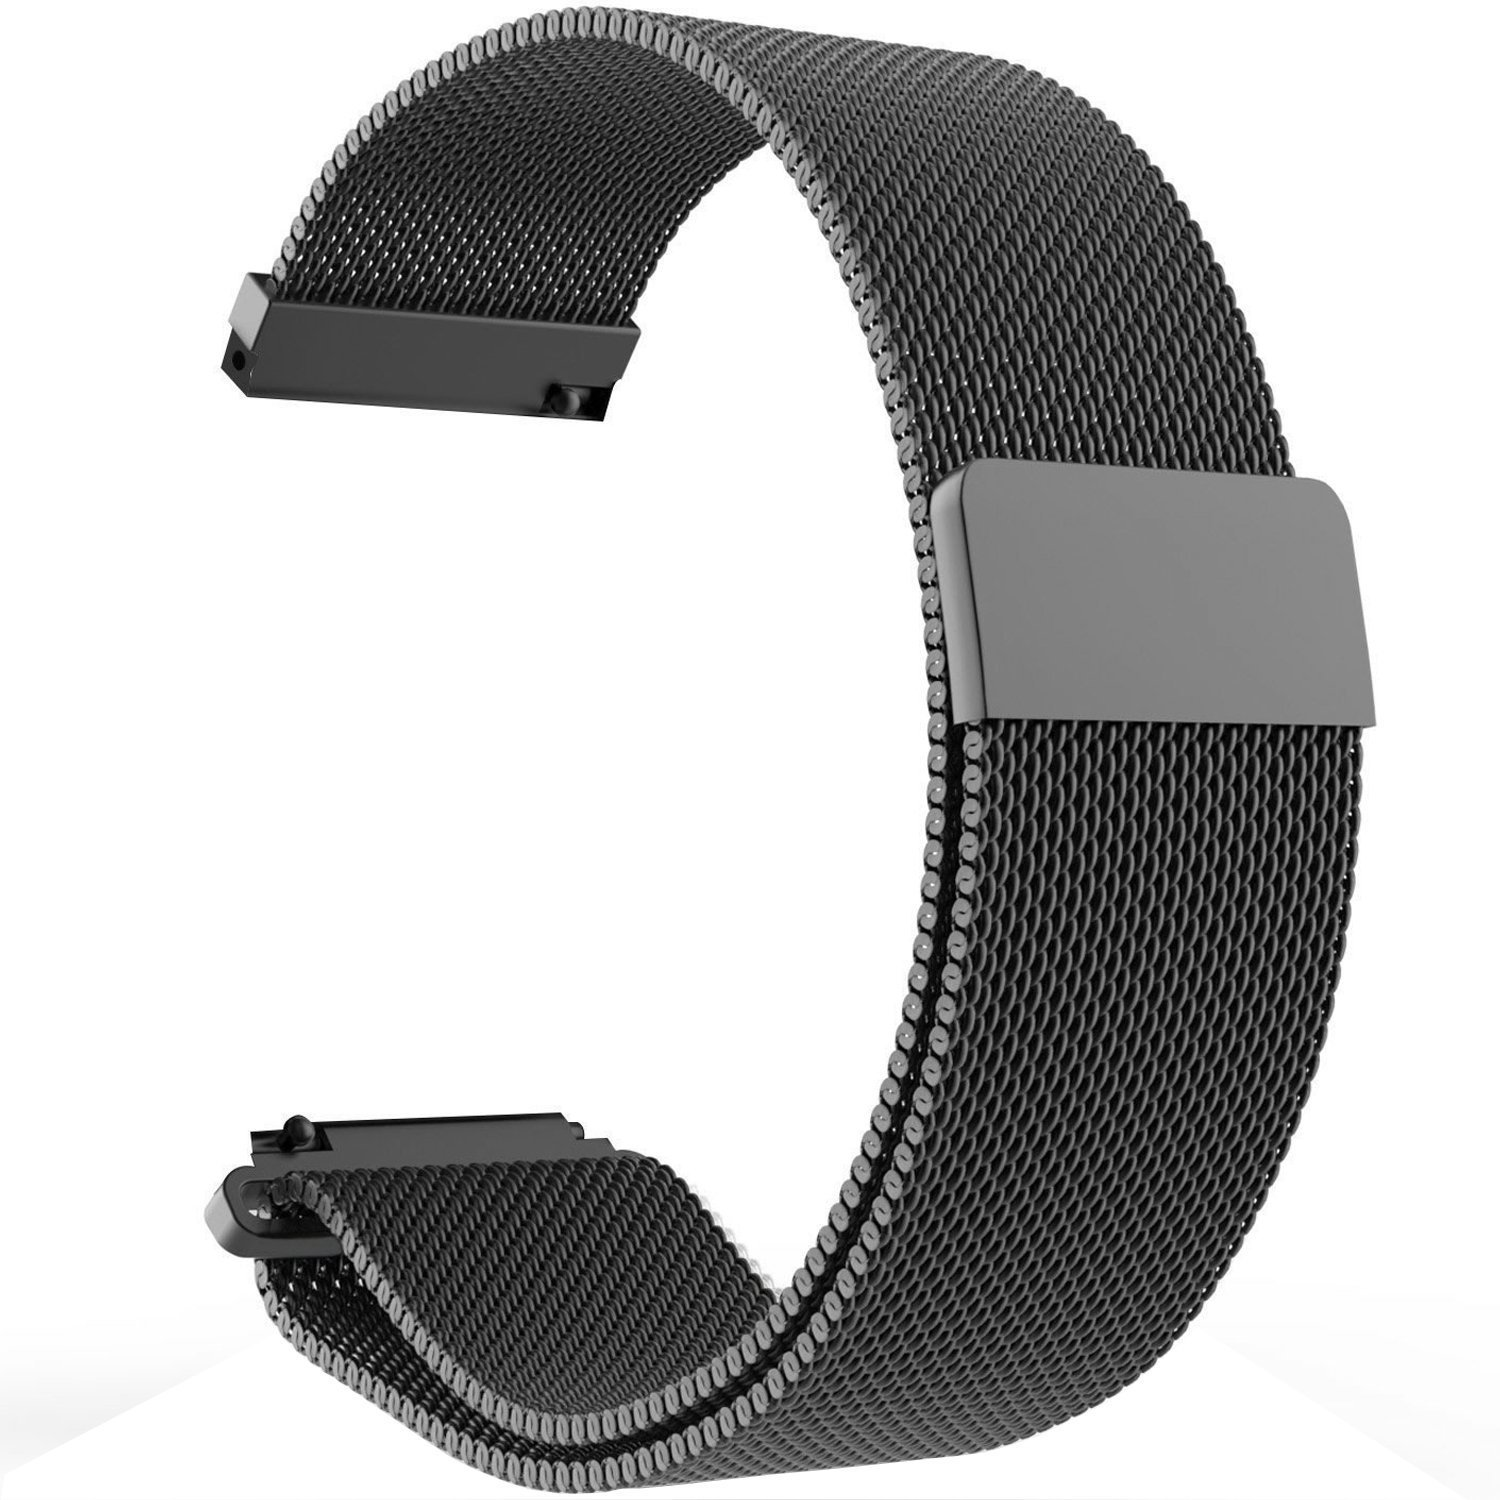 Replacement Metal Milanese Loop Bands for Fossil Q Marshal Gen 2 Touchscreen Smartwatch (Black)